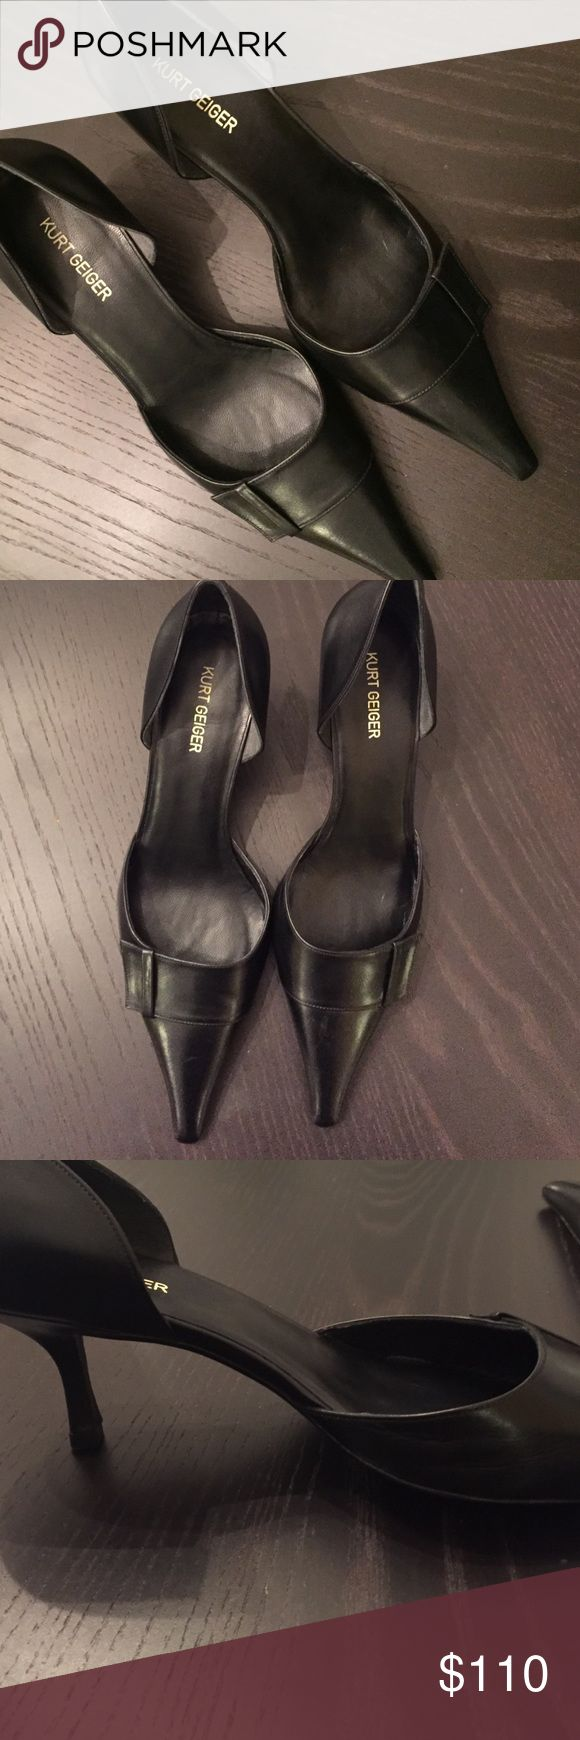 Kurt Geiger black low heels NWOT 39.5 These Kurt Geiger heels are really unusual and yet stunning. A size 39 1/2, they are new without tags I SHIP IMMEDIATELY- no long waits! kurt geiger Shoes Heels